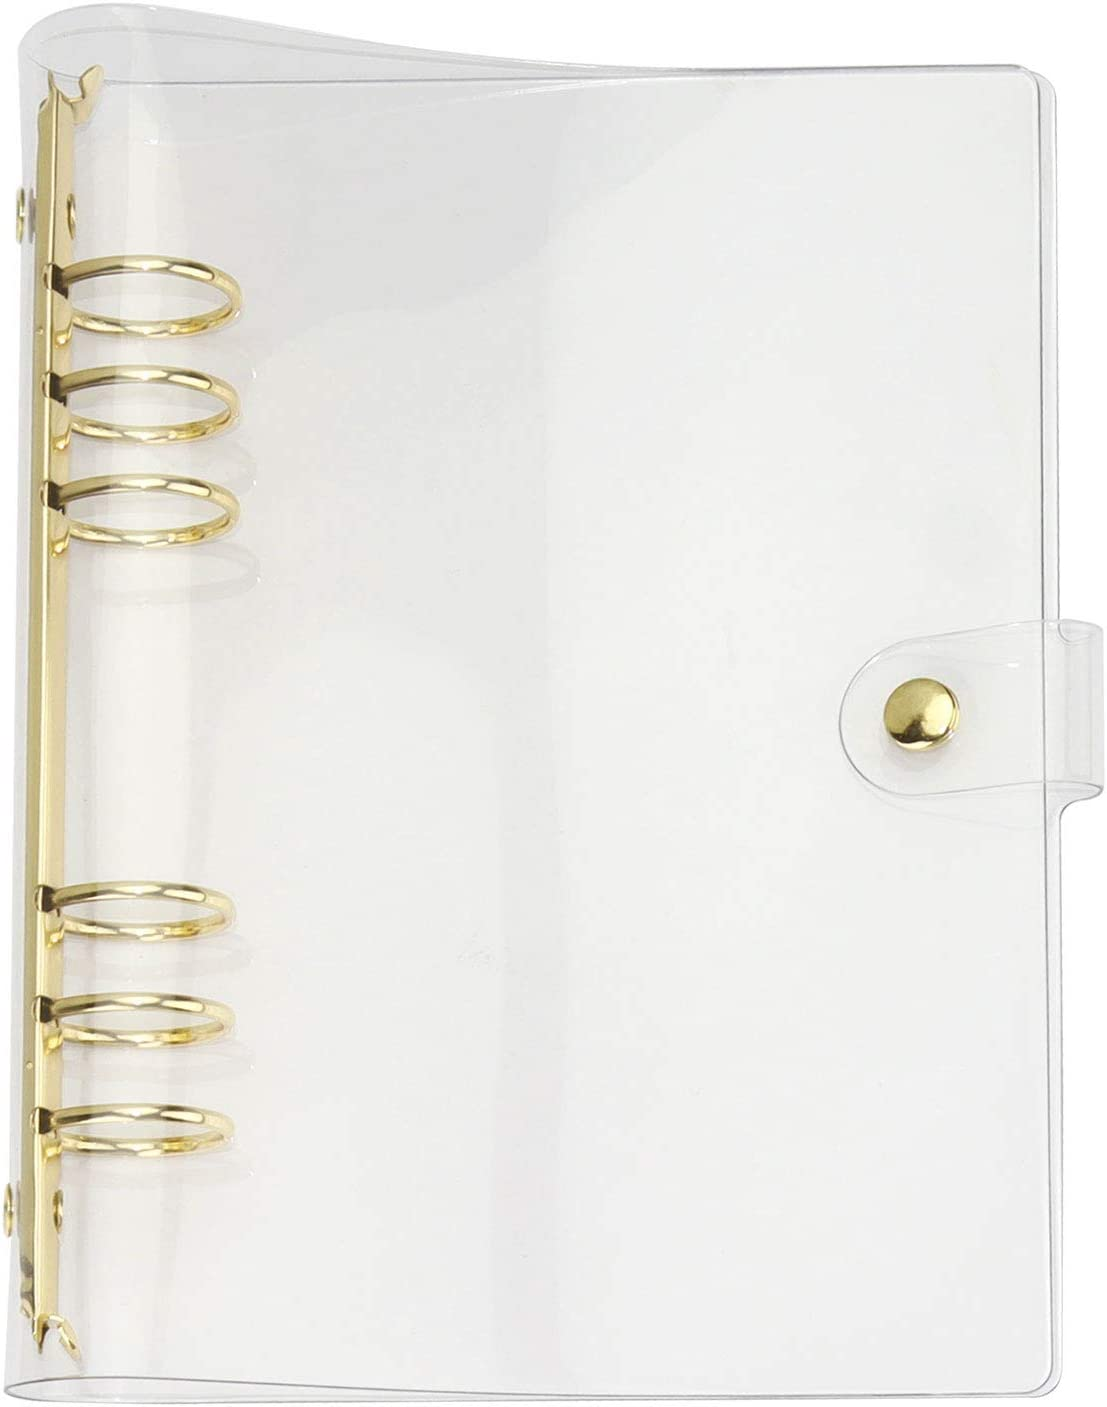 MultiBey A5 Clear Notebook Cover Soft PVC Binder Cover with 6 Extra Large Round Rings 30mm Loose Leaf Journal Personal Dairy Transparent PVC Planner Office School Home Writing Supplies (Gold, A5)